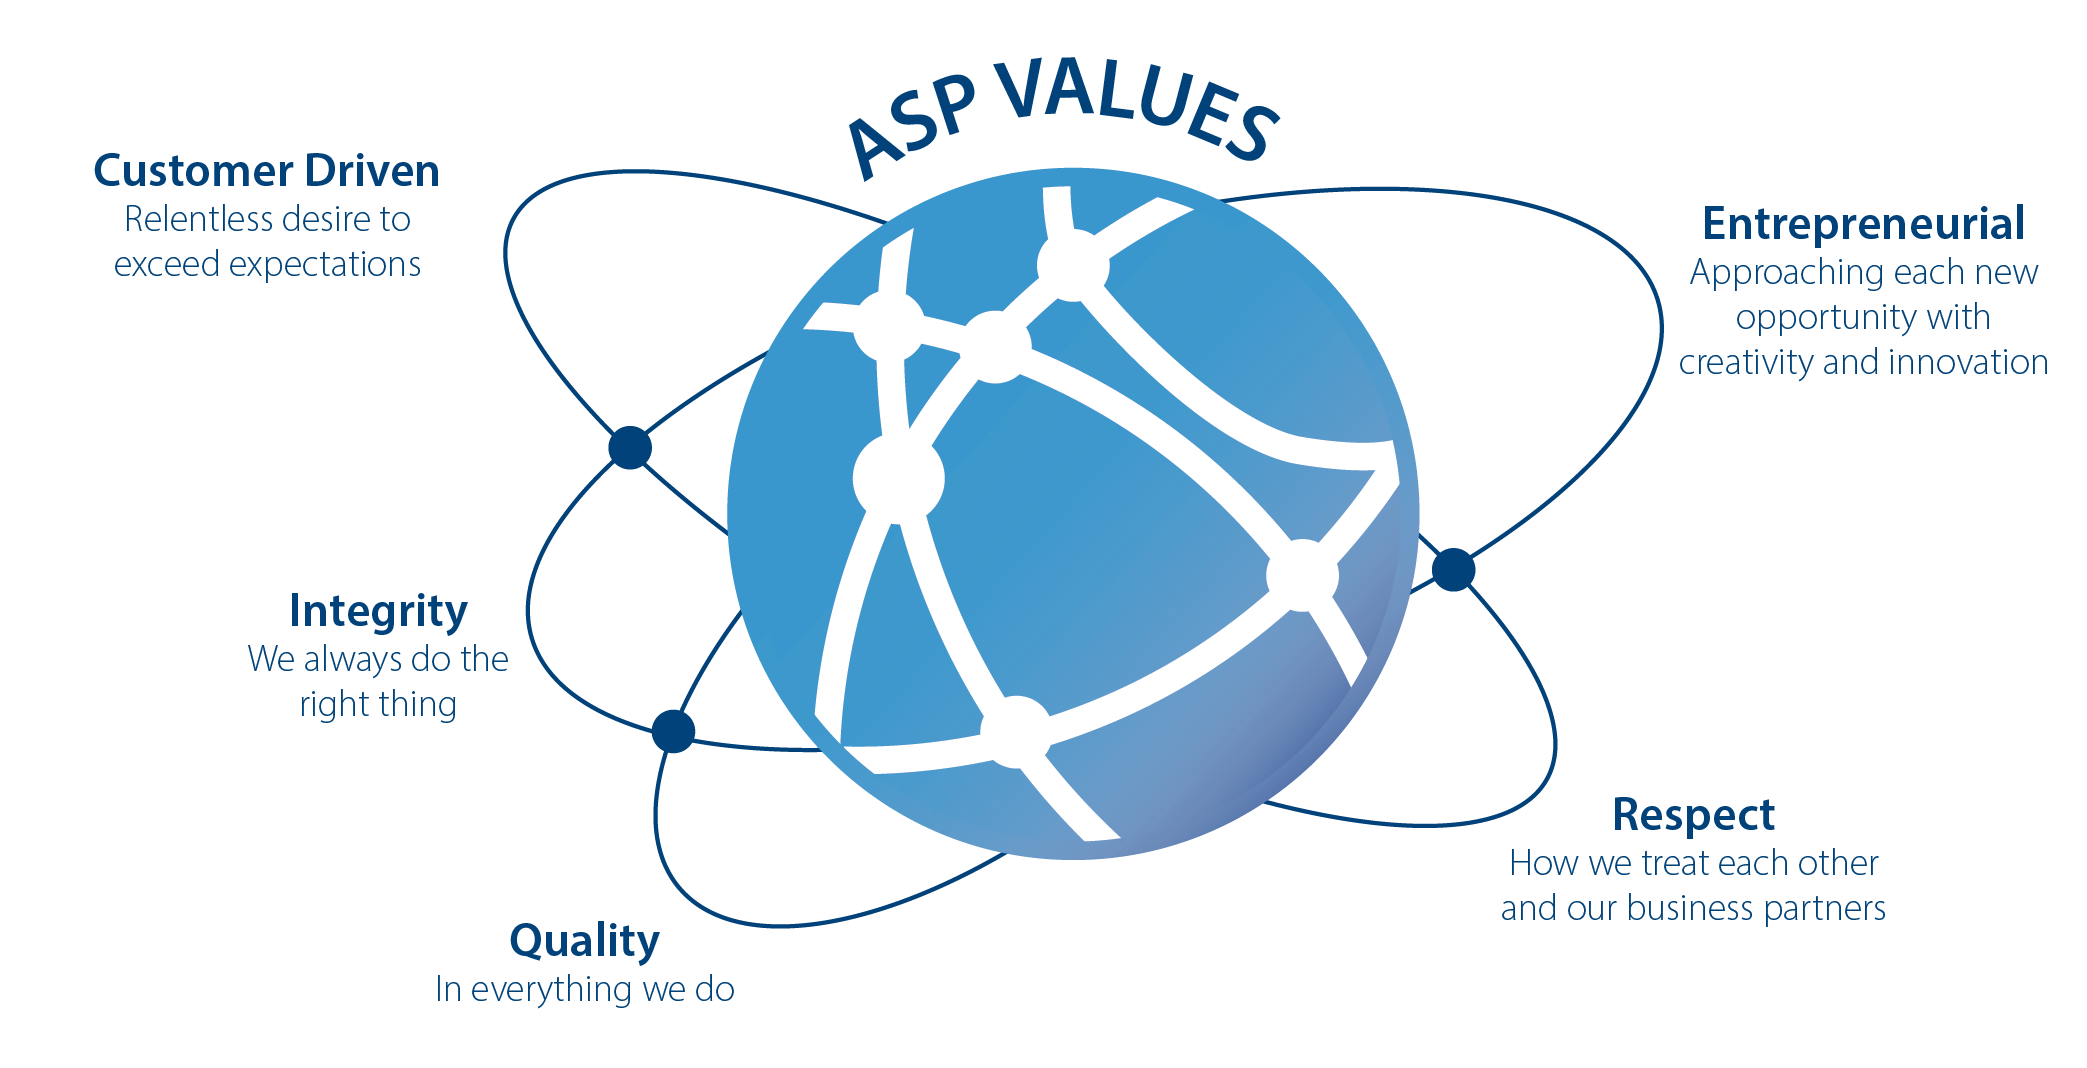 ASP Values Graphic, values including Customer Driven, Integrity, Entrepreneurial, Quality and Respect